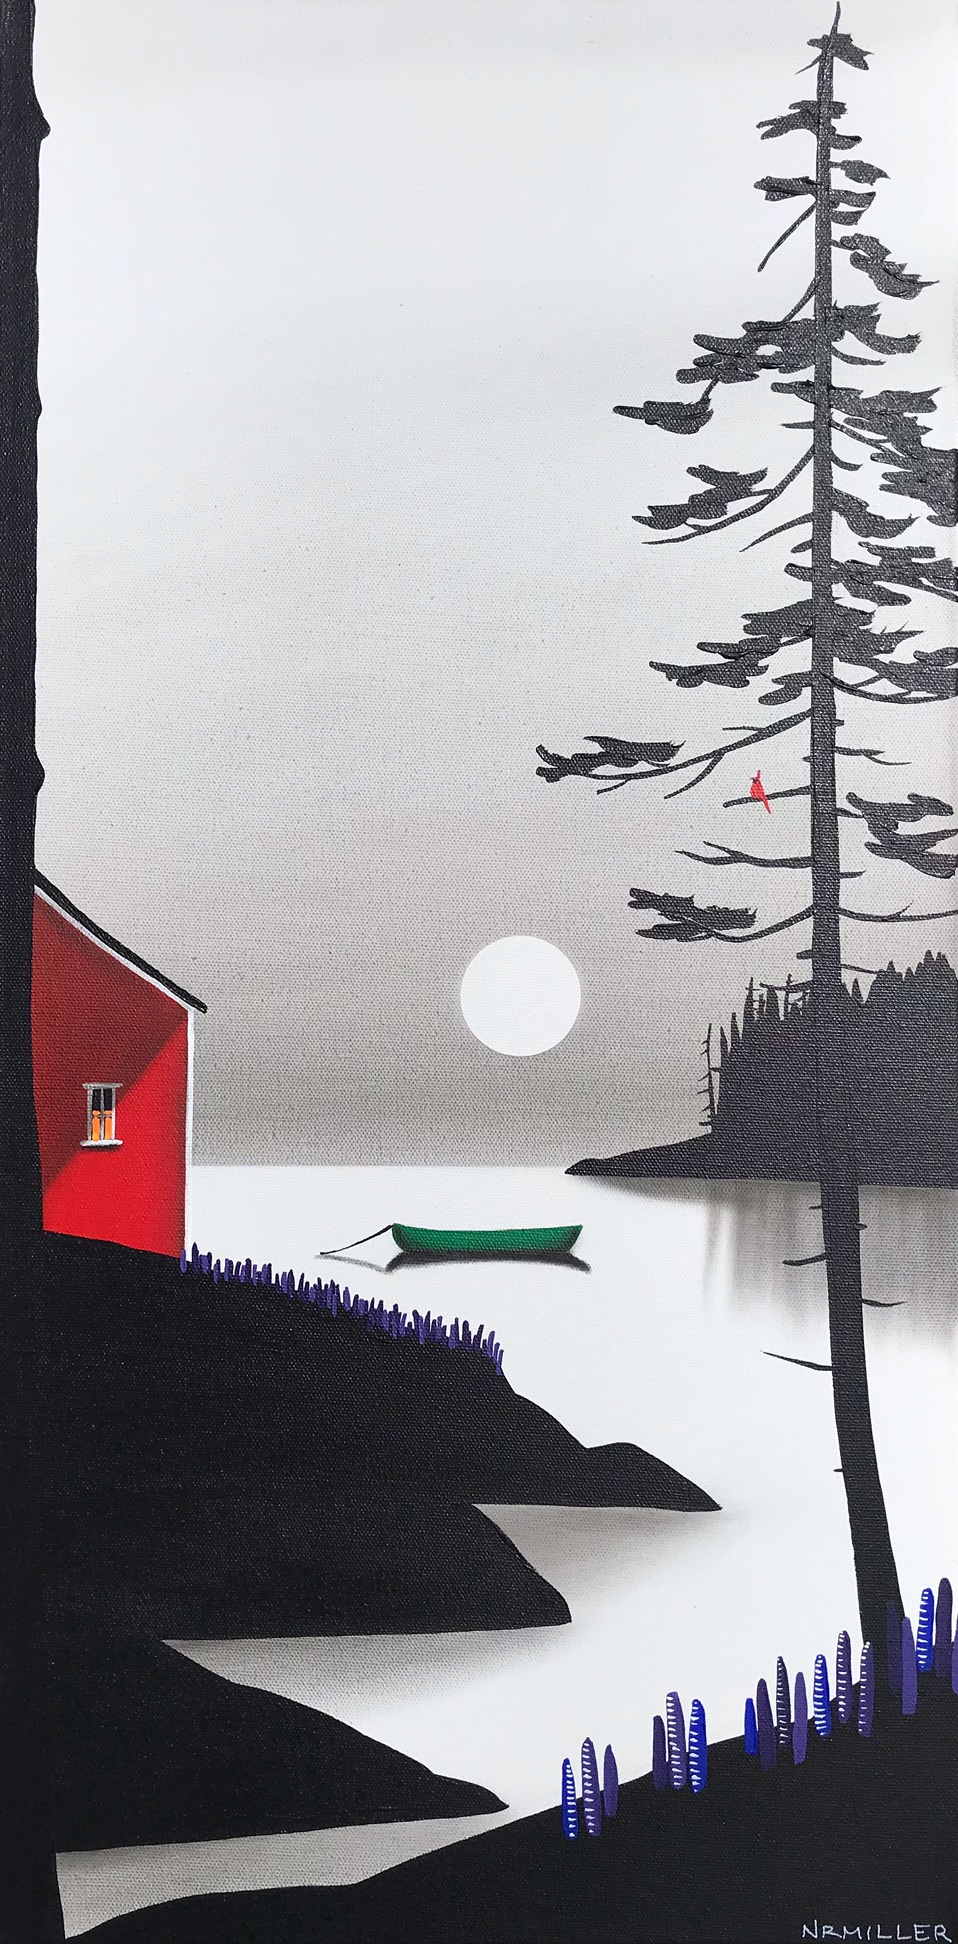 Early Summer Nights, mixed media landscape painting by Natasha Miller | Effusion Art Gallery + Cast Glass Studio, Invermere BC